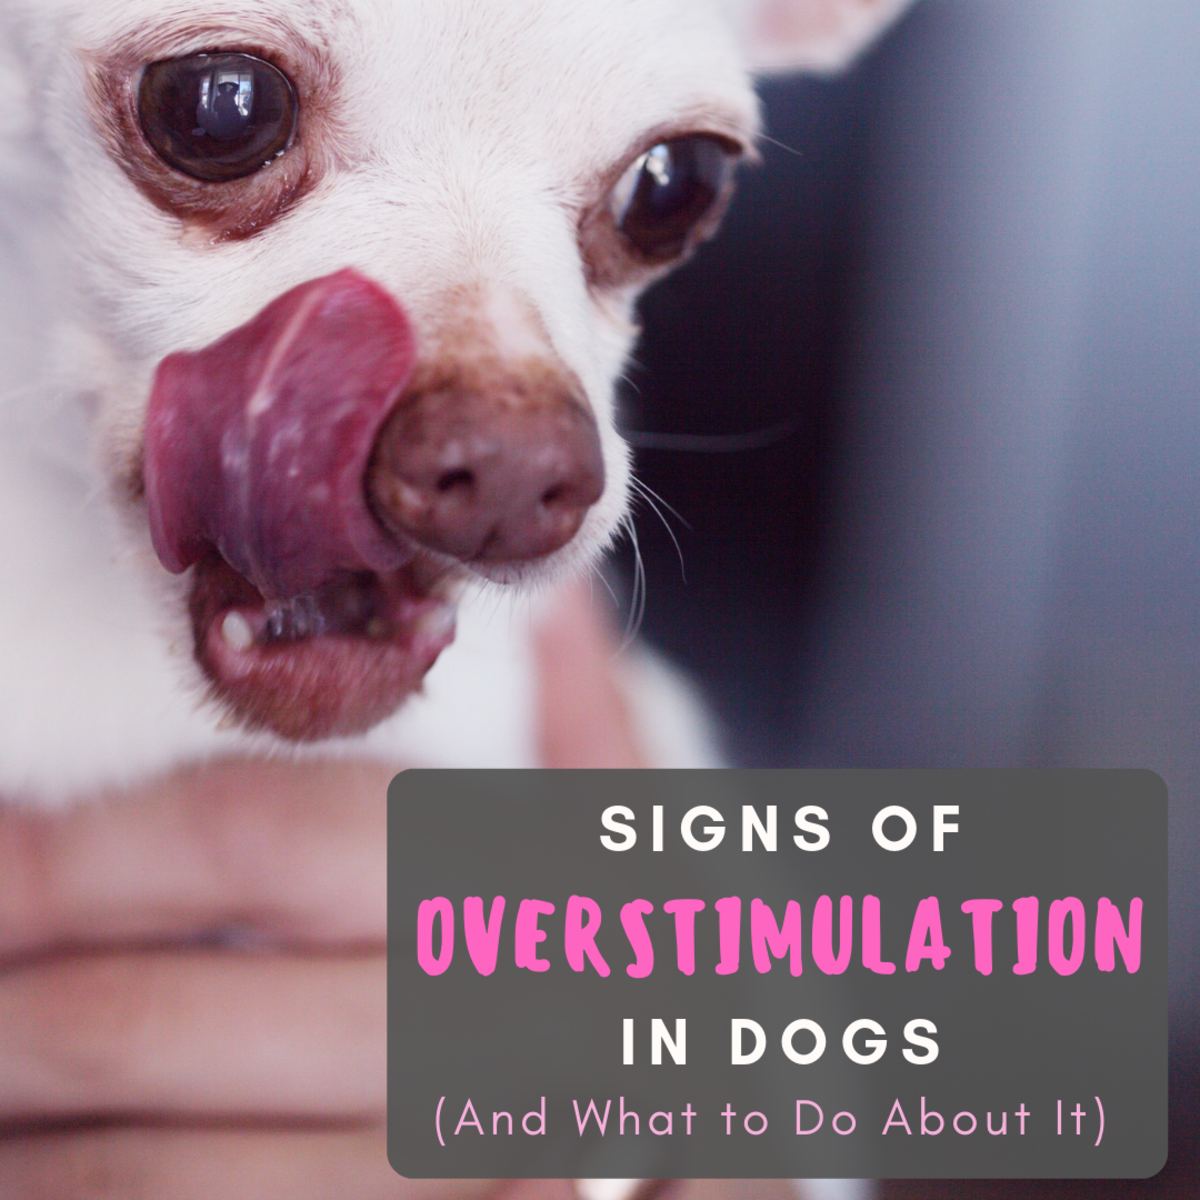 It is not uncommon for dogs to be overstimulated, and more exercise is not always the answer!